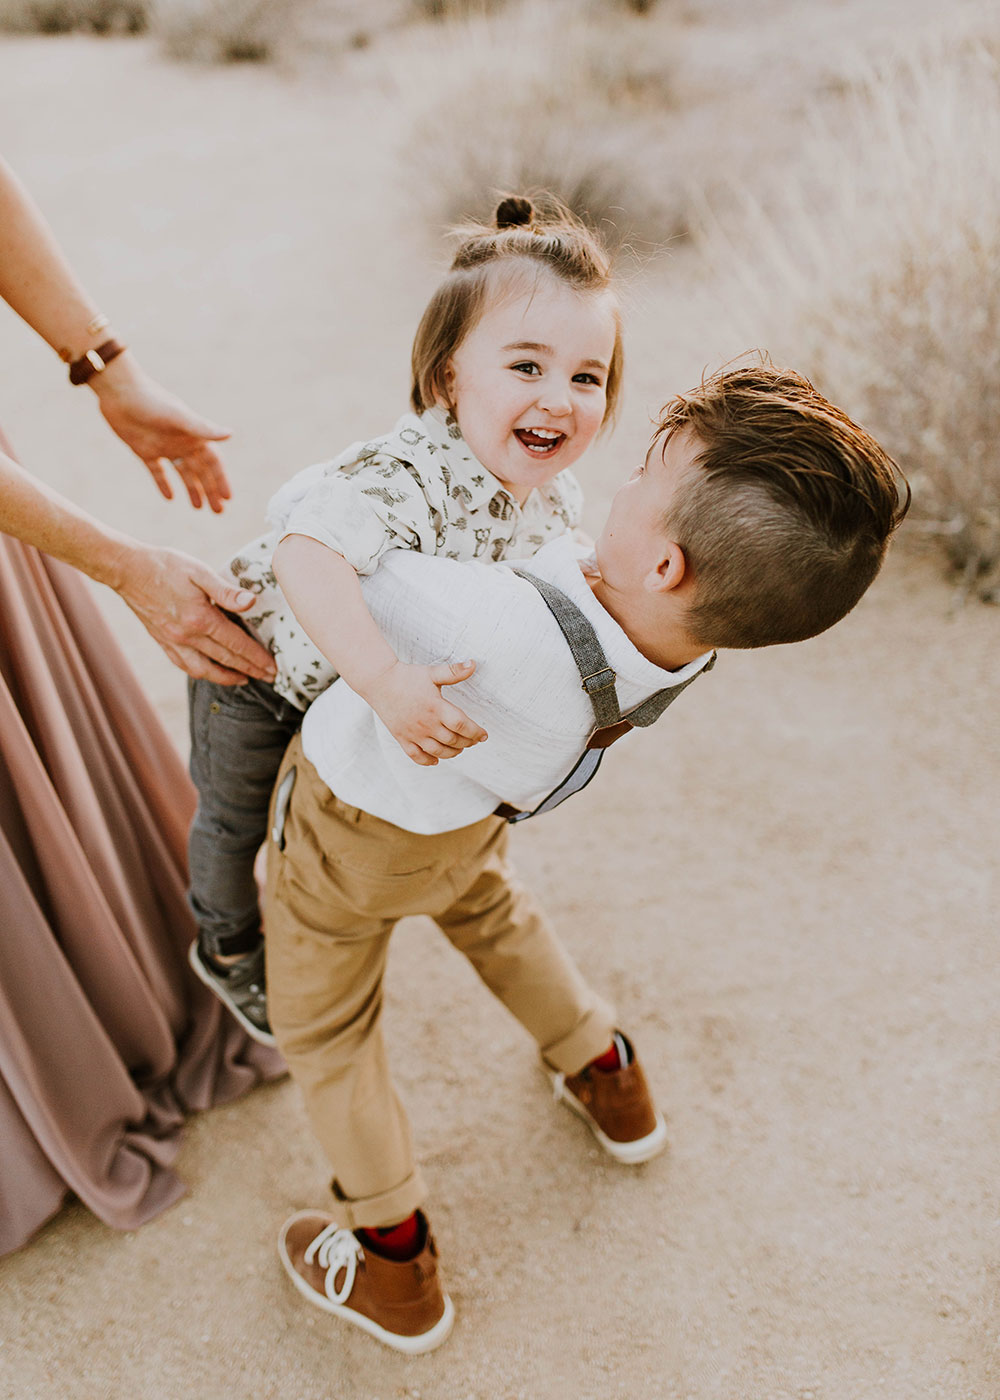 brother bear hugs that make mom nervous #familyphotos #brothers #siblinglove | thelovedesignedlife.com